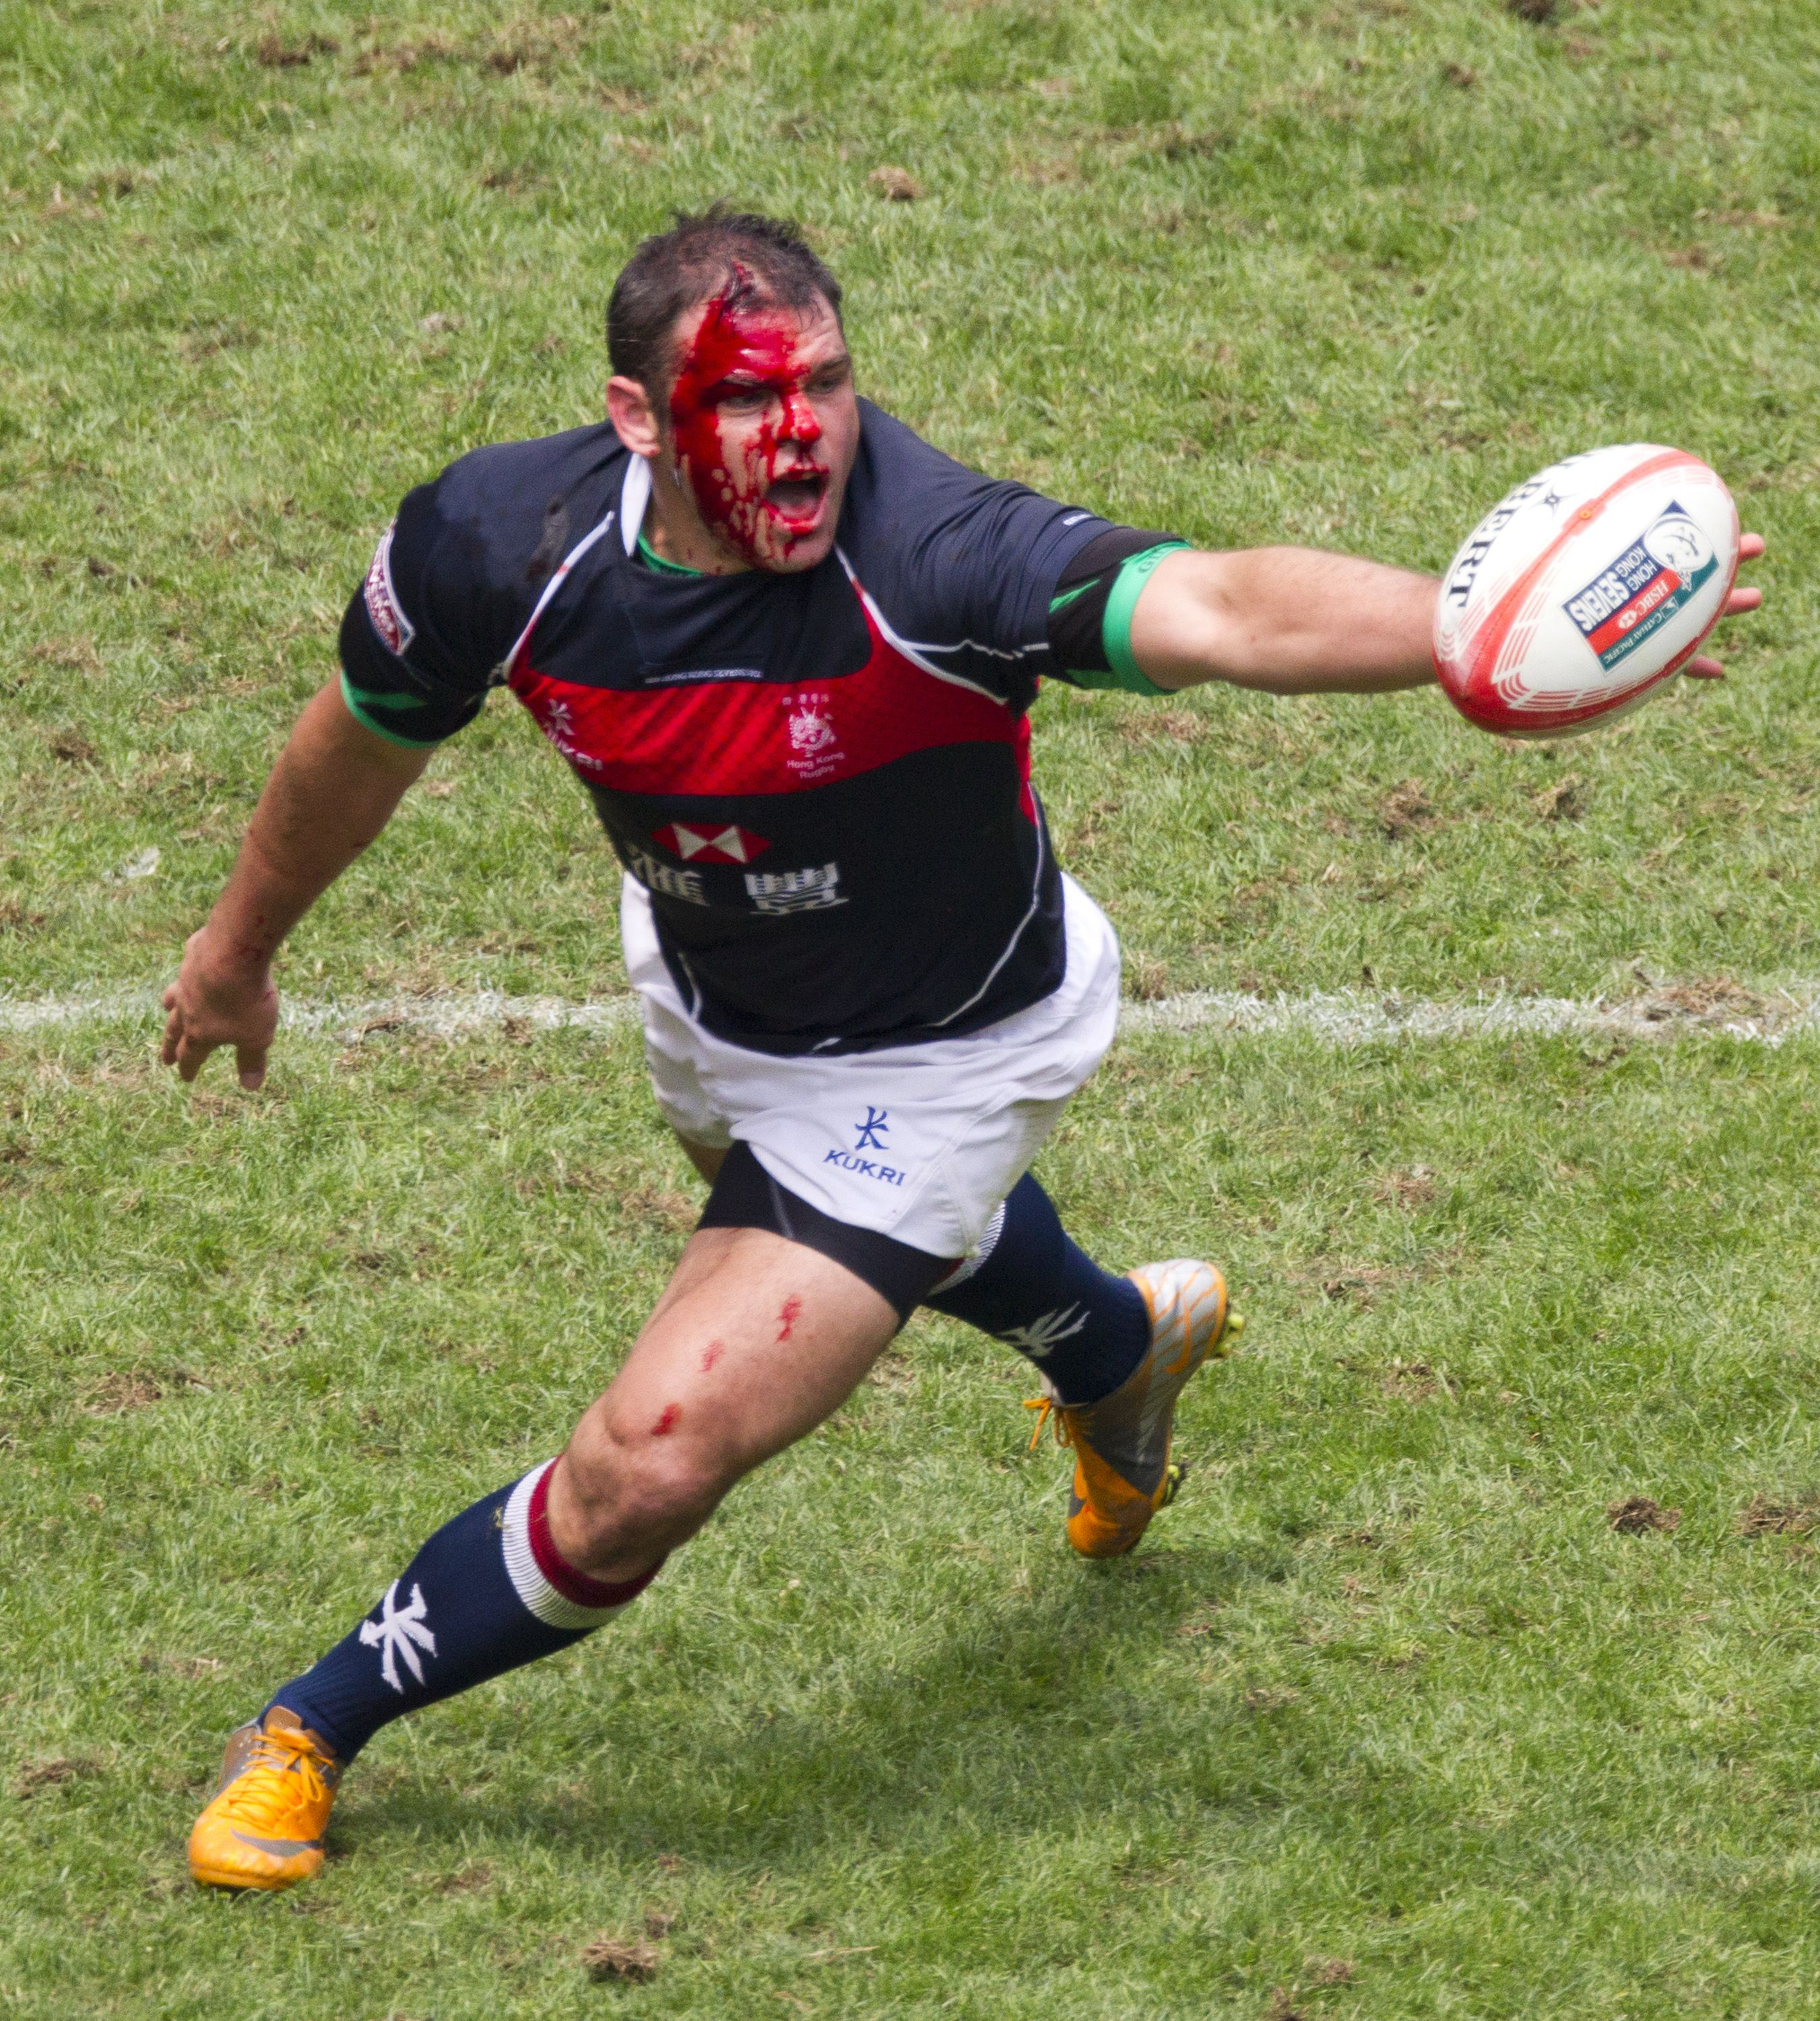 Rugby HK7s Rugby Rugby, Rugby league, Sports